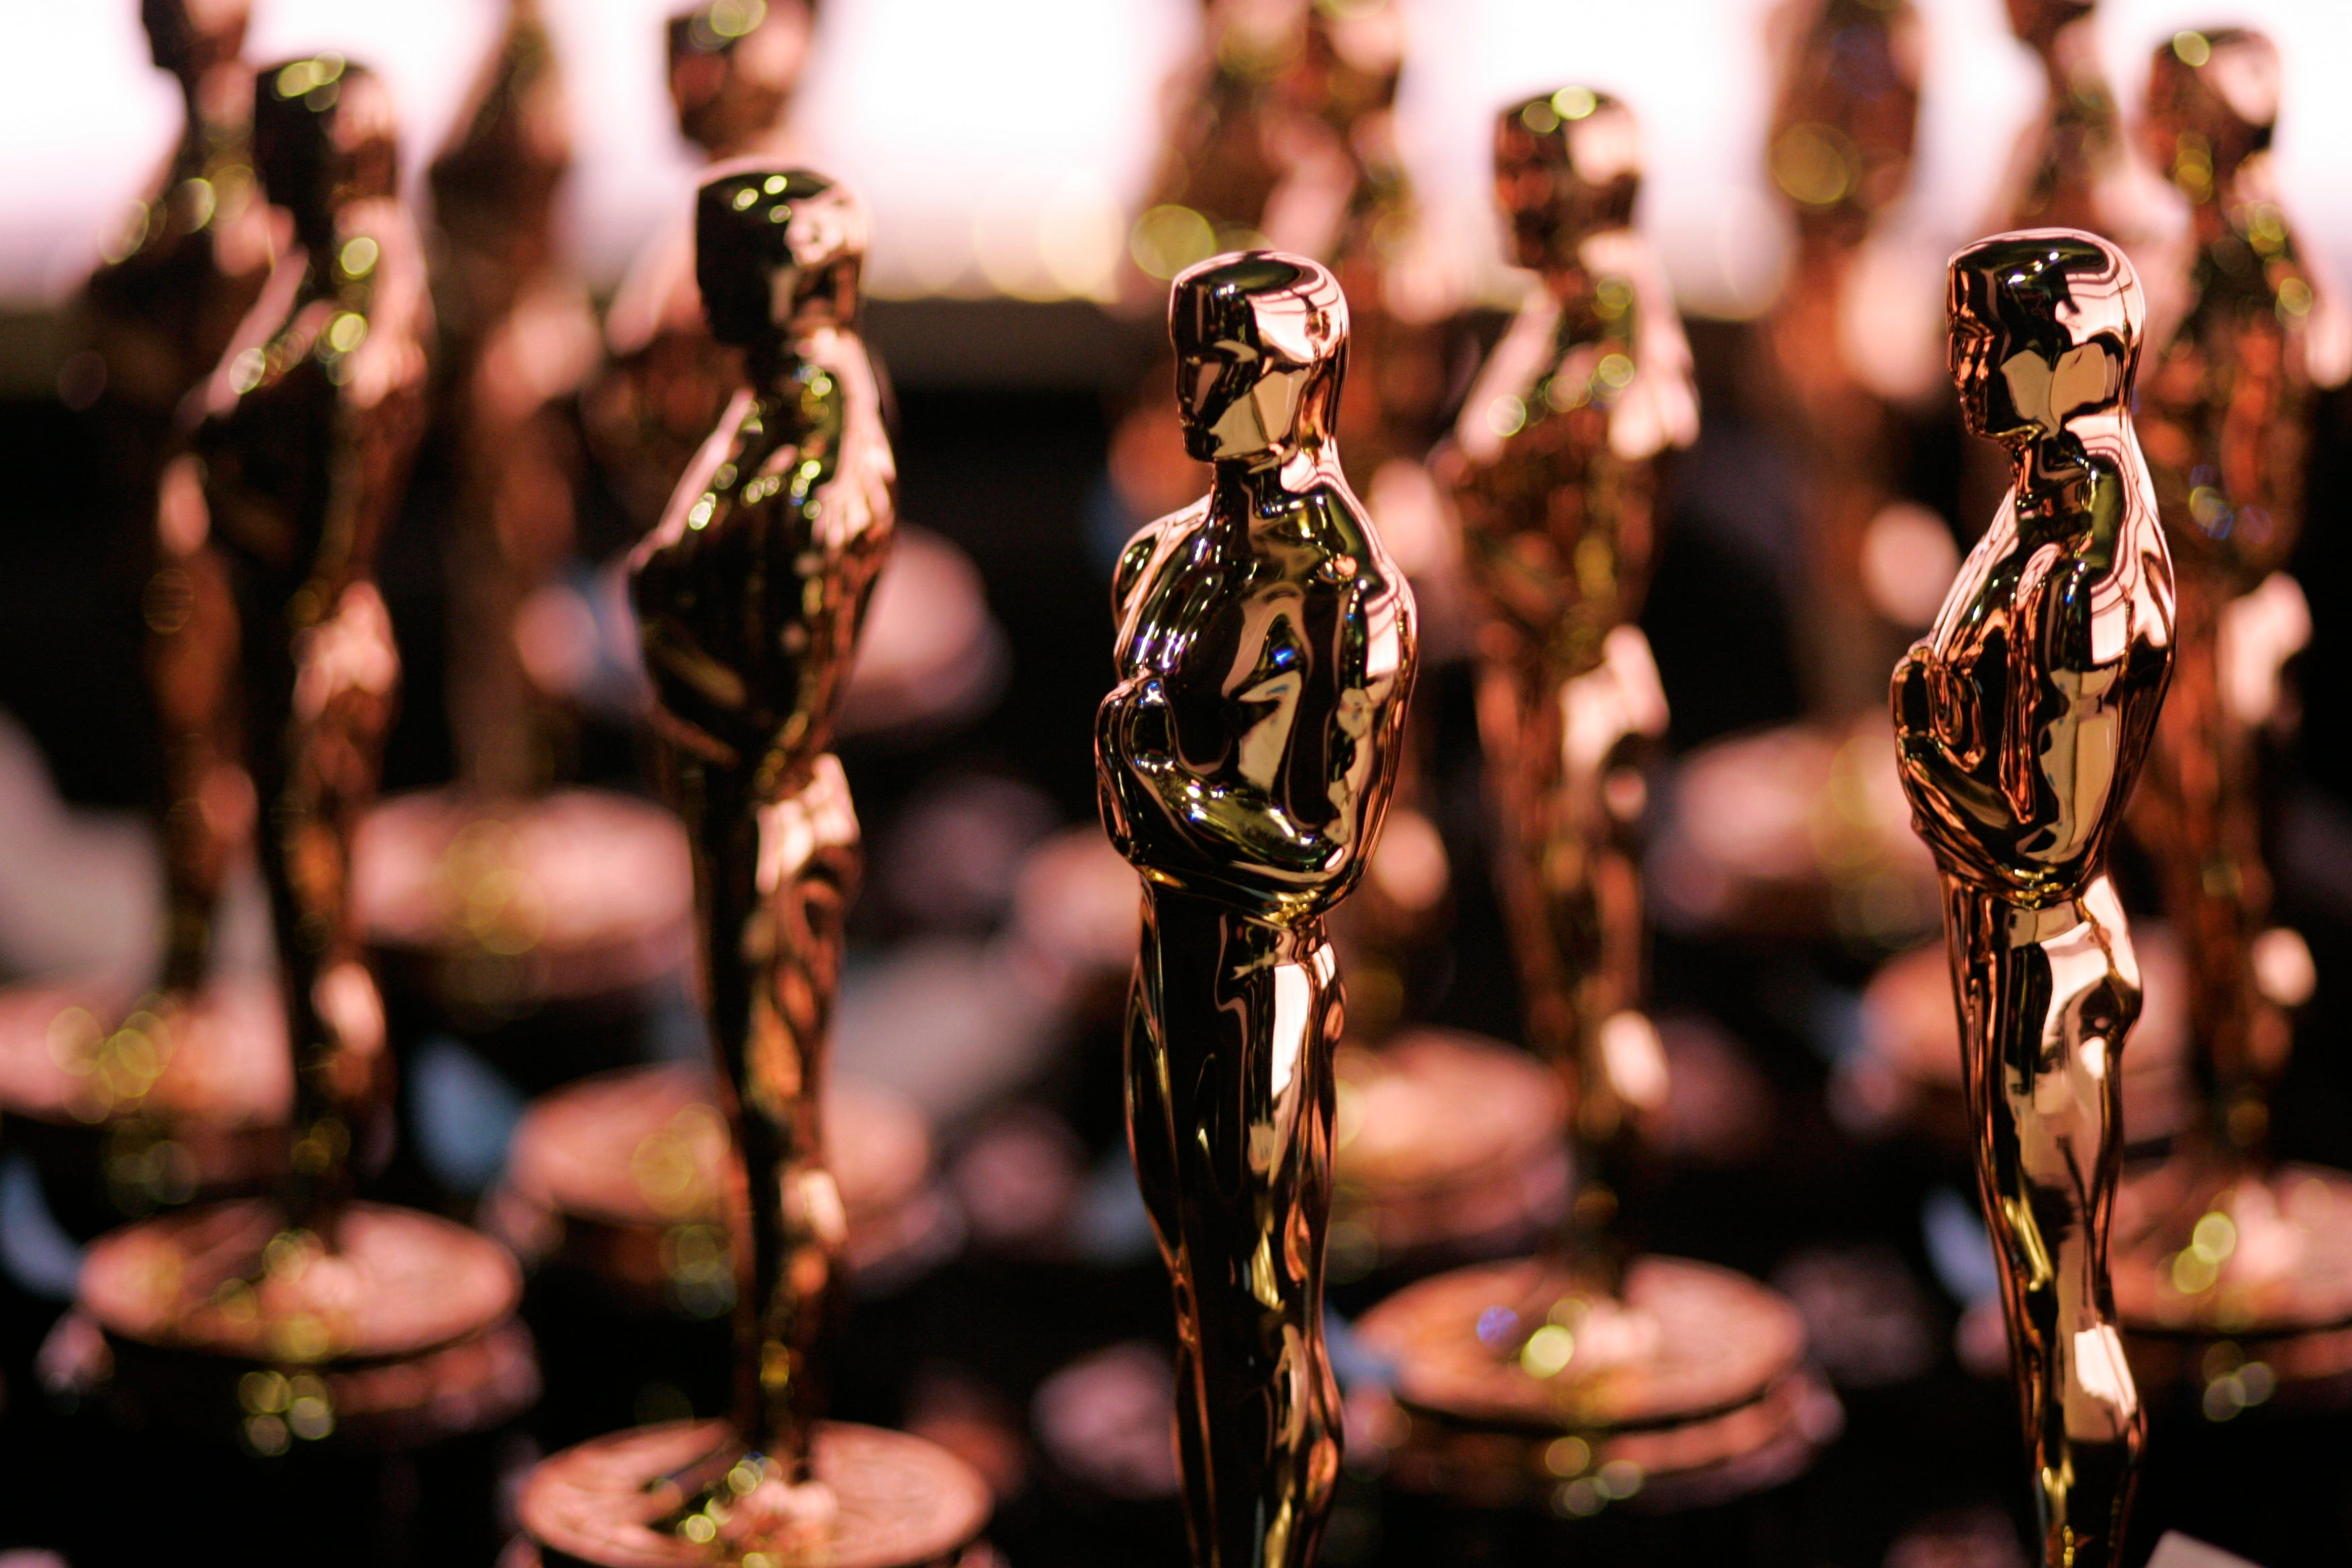 Who will be watching the Oscars? Count on El Paso to tune into the Academy Awards | El Paso Times